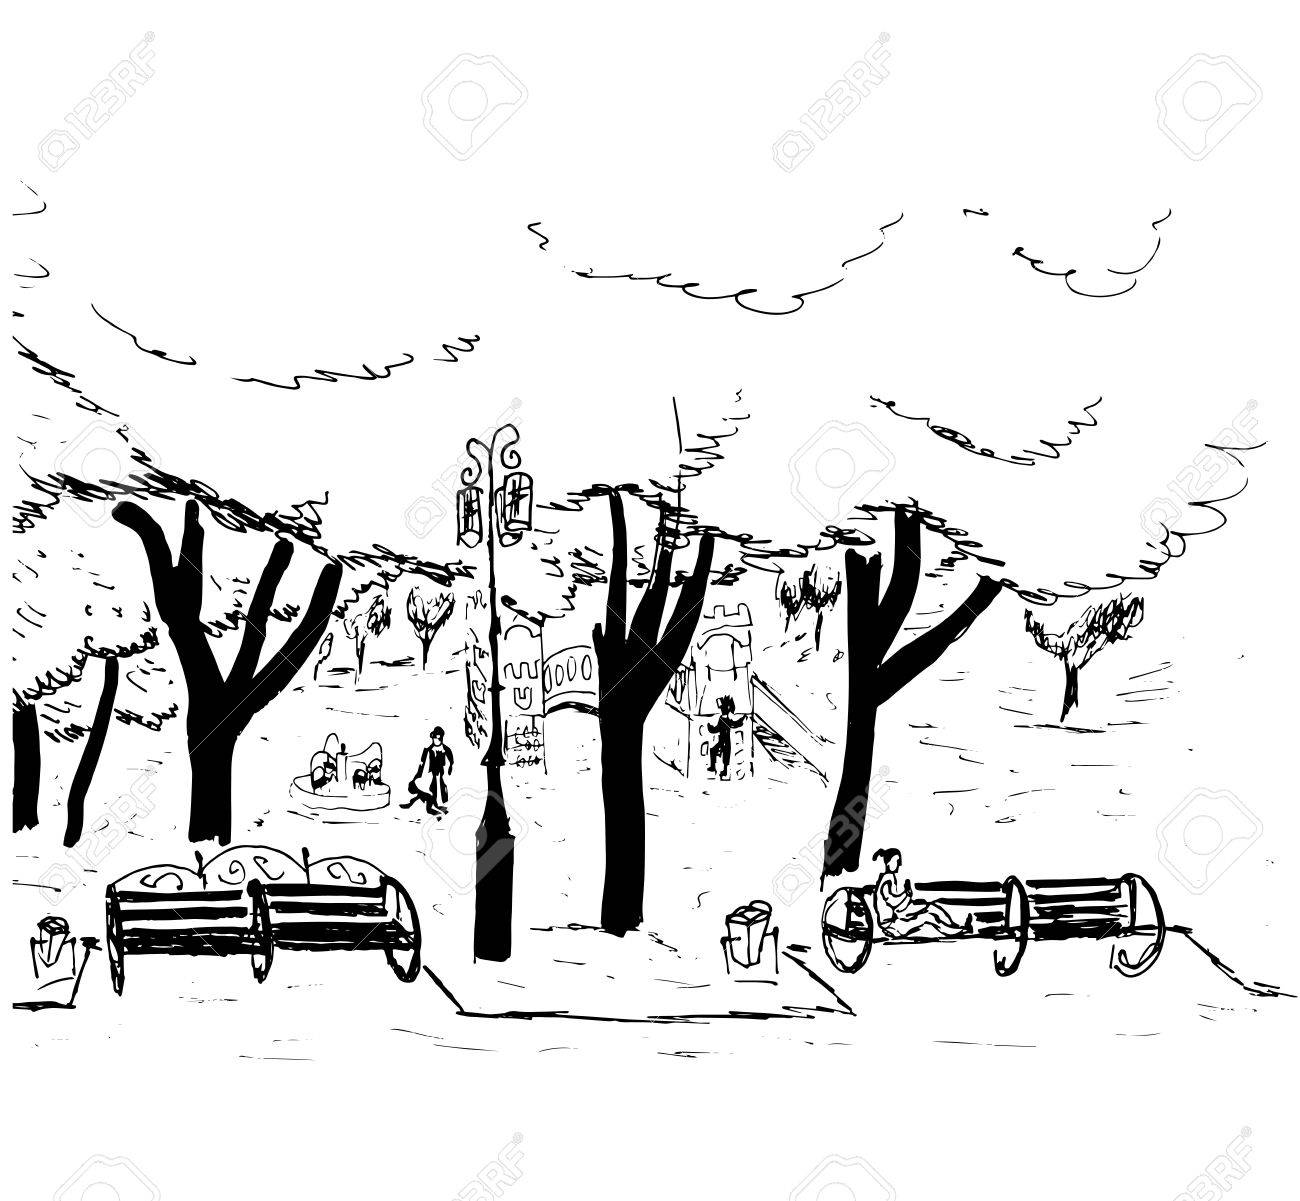 1300x1201 Hand Drawn Sketch Of The City Park With Trees, Benches, A Lantern